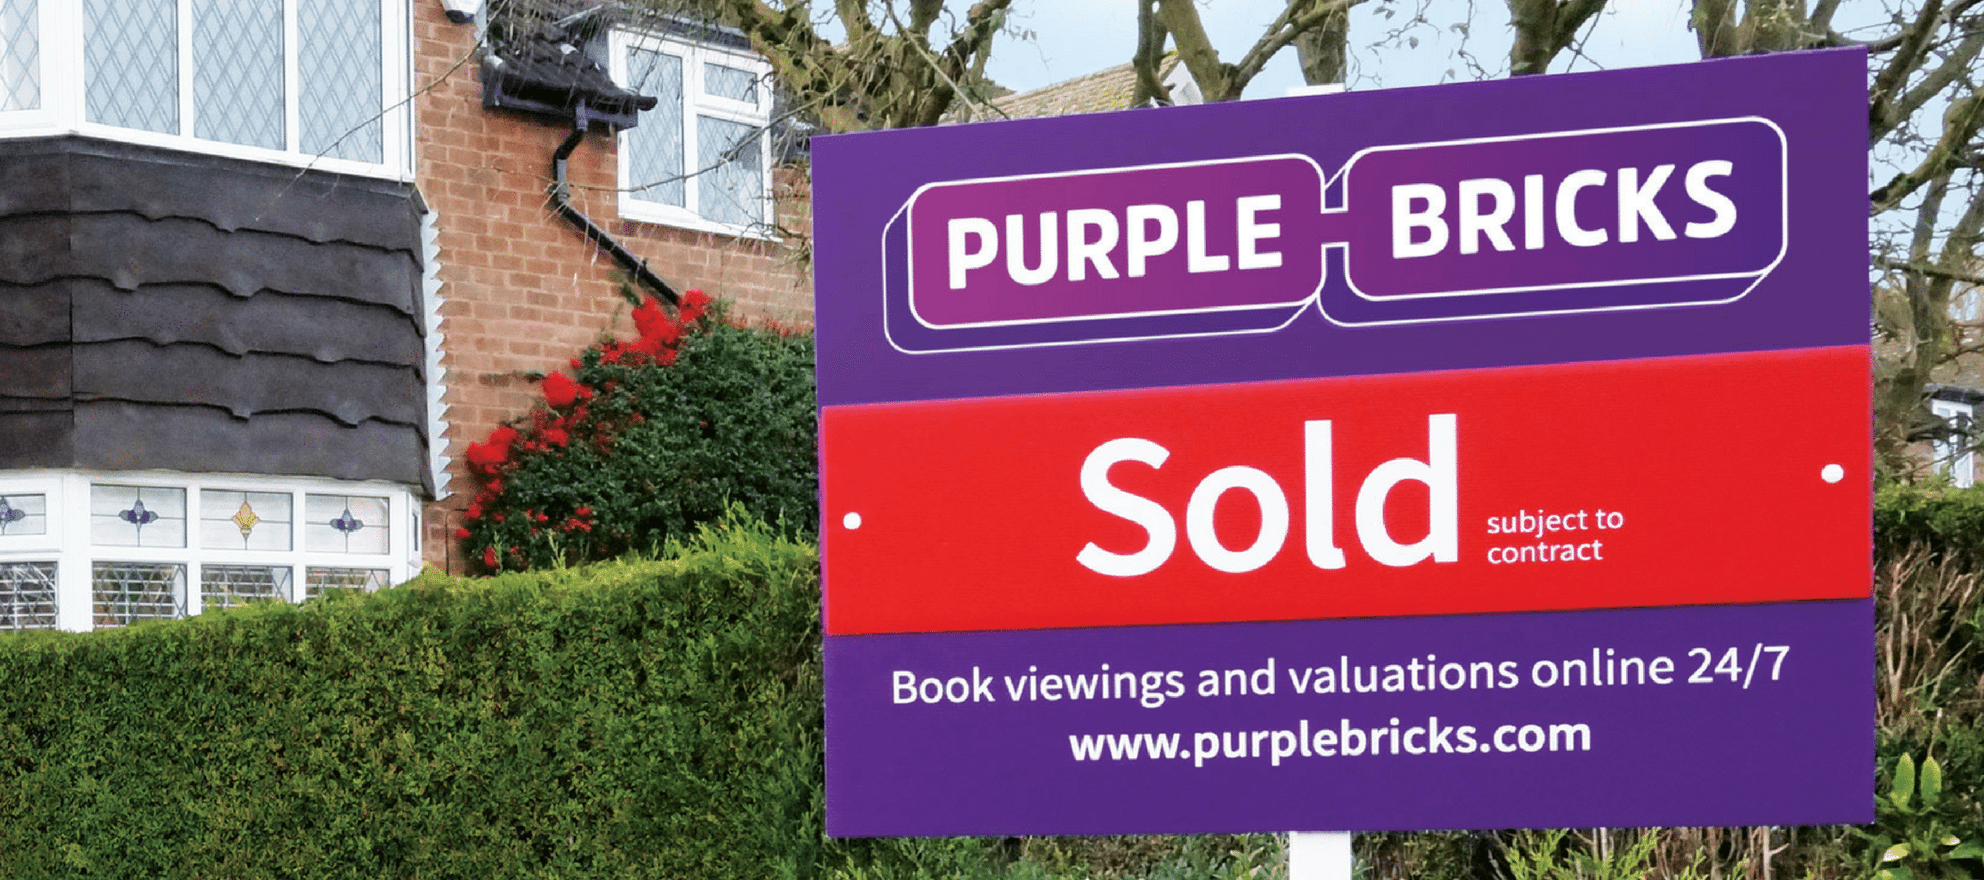 Purplebricks raises its fee in Australia, but has 'no plans' for a US hike